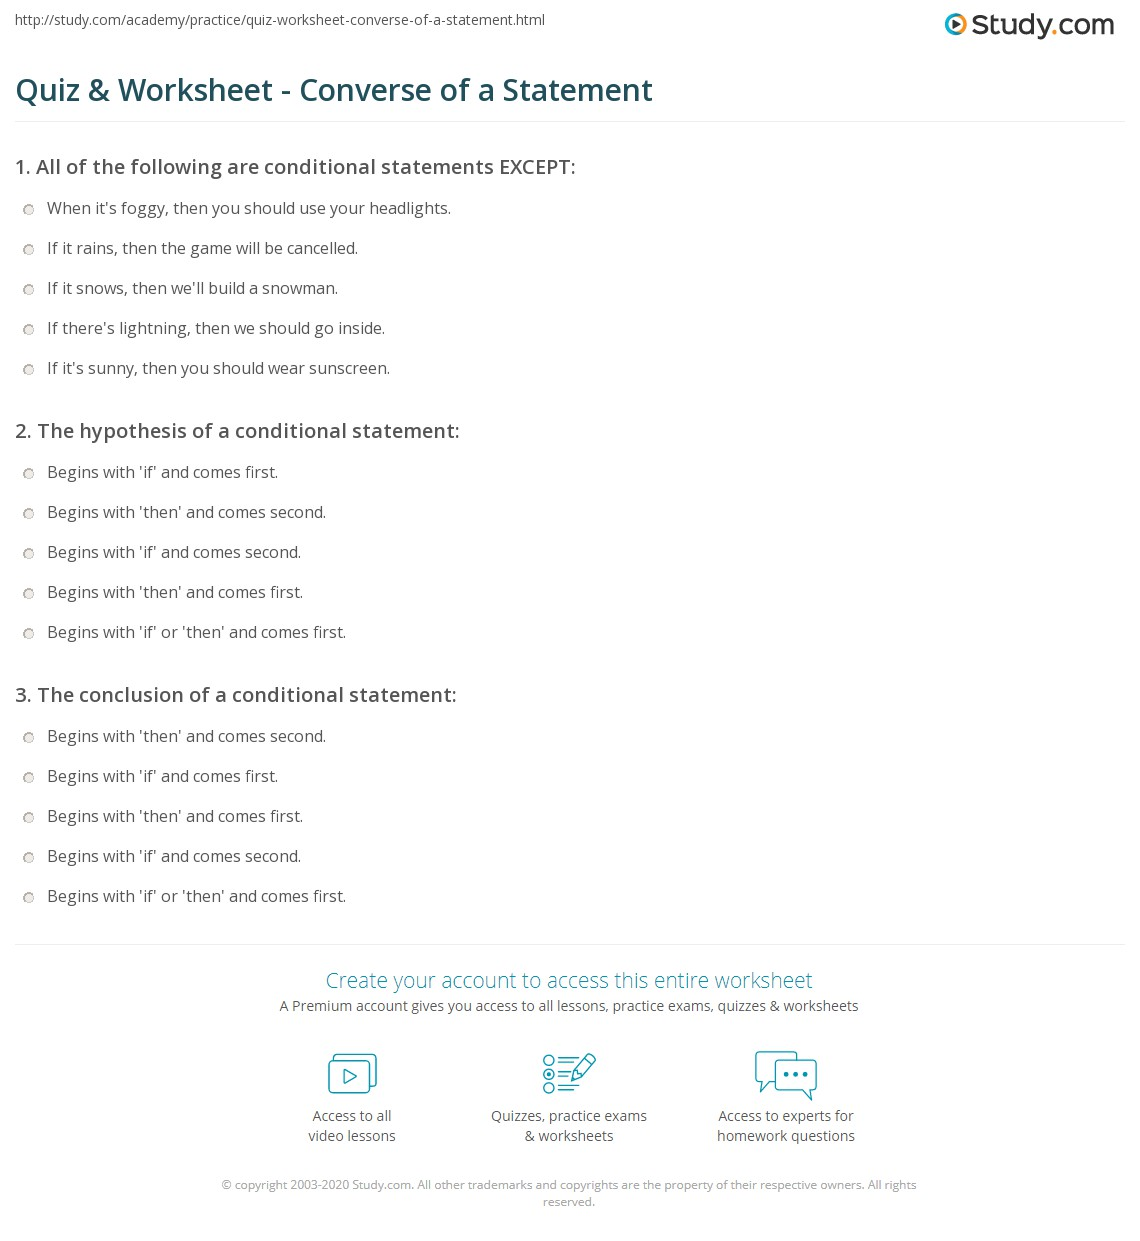 quiz & worksheet - converse of a statement | study